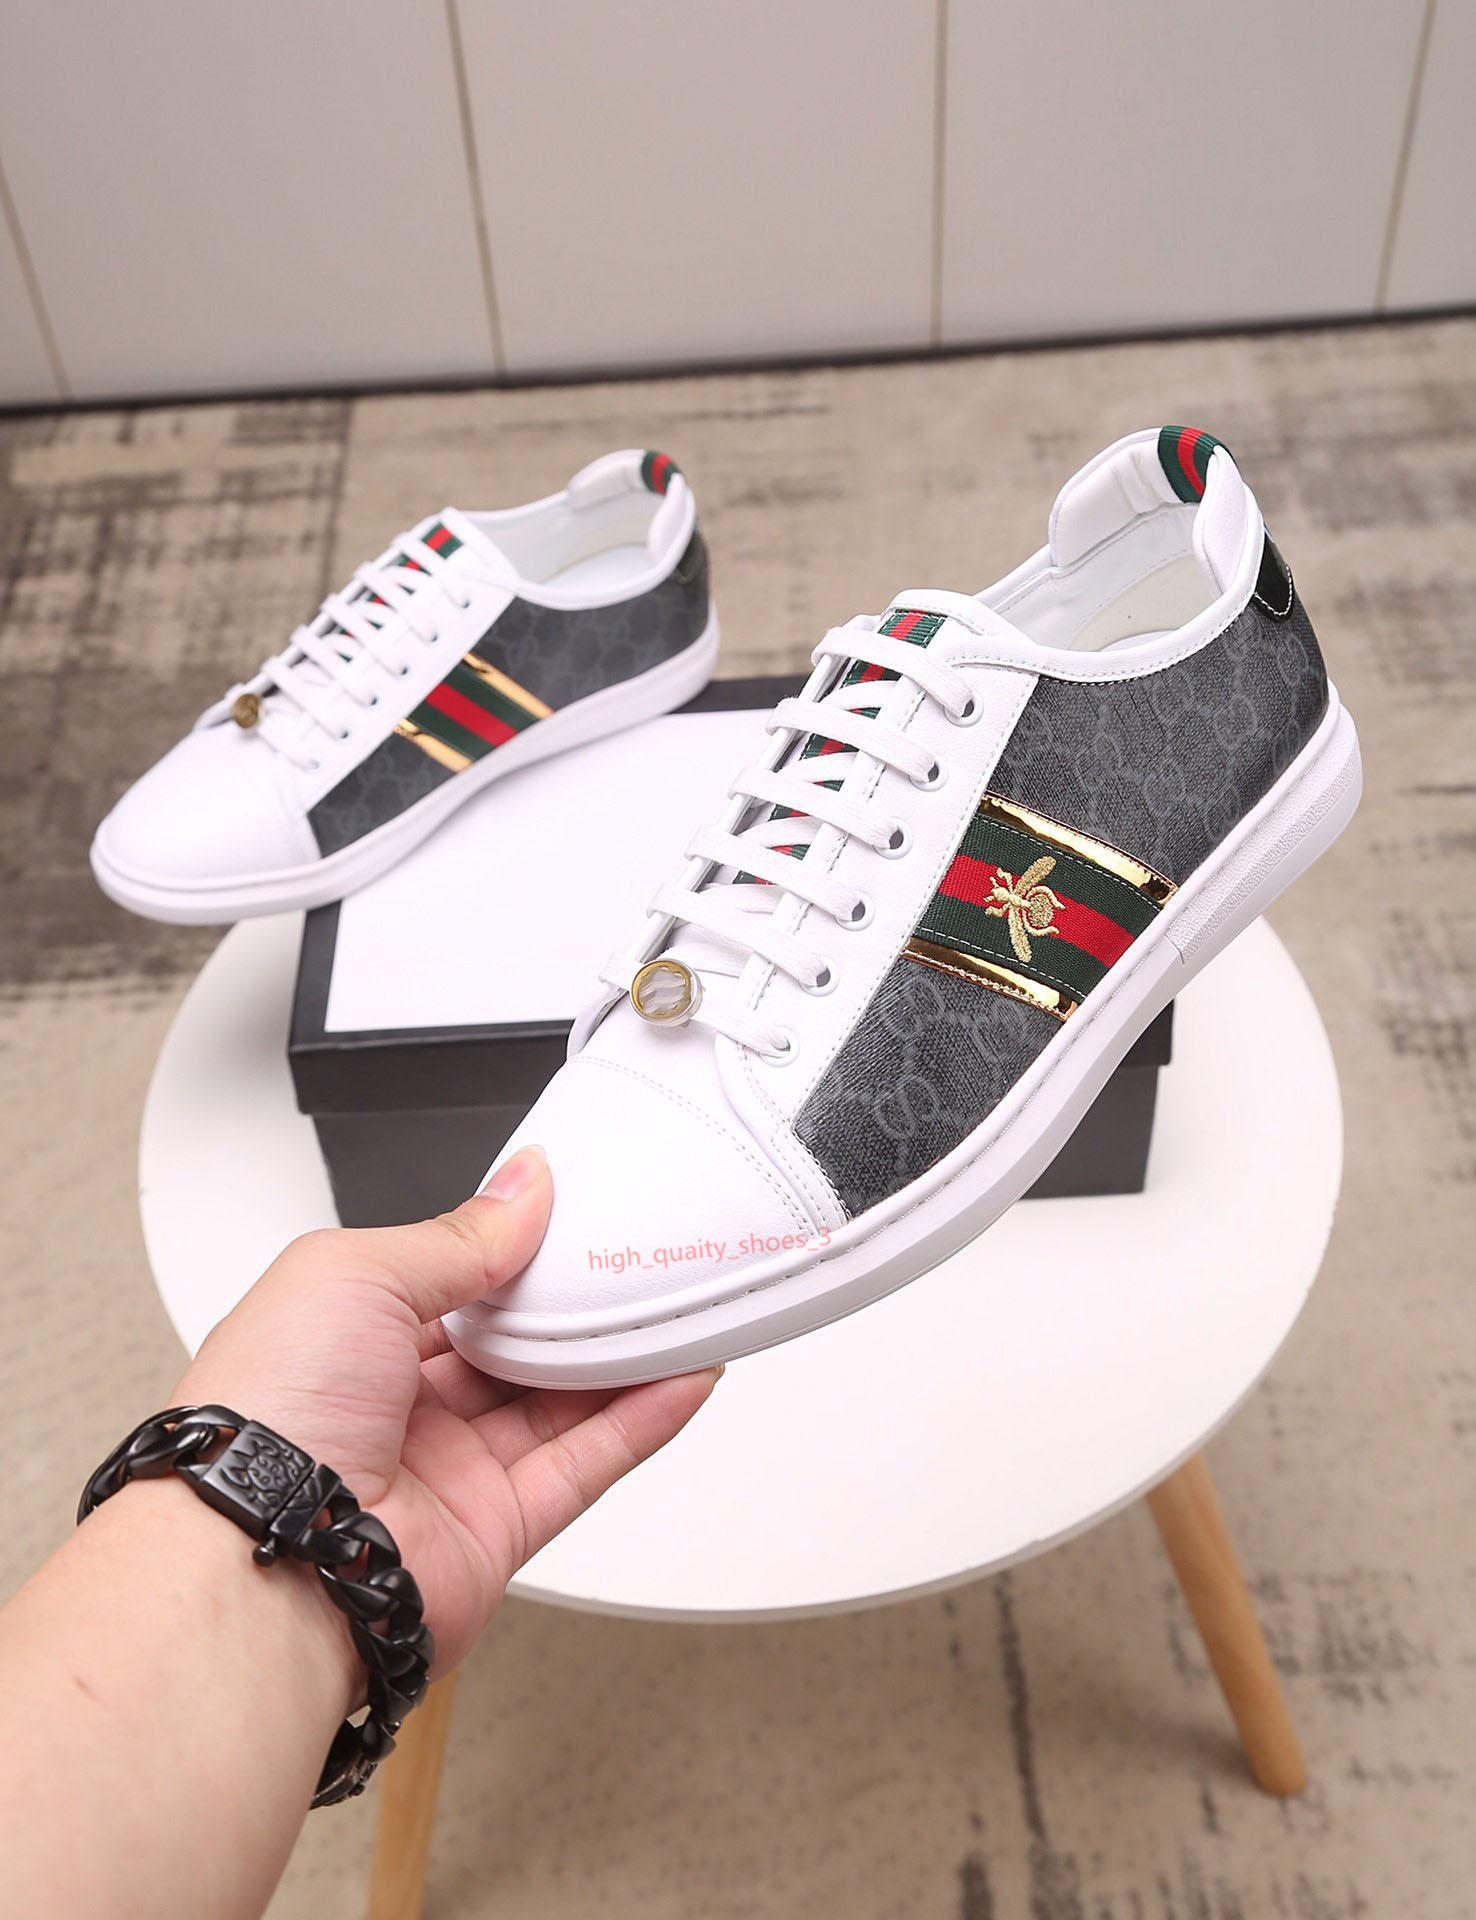 Gucci shoes New Fashion Branco / inferior Designer Red Mens Womens Sneakers Low Top Casual Plano Designer Men Shoes Unissex Sneaker Outdoor condução Xshfbcl